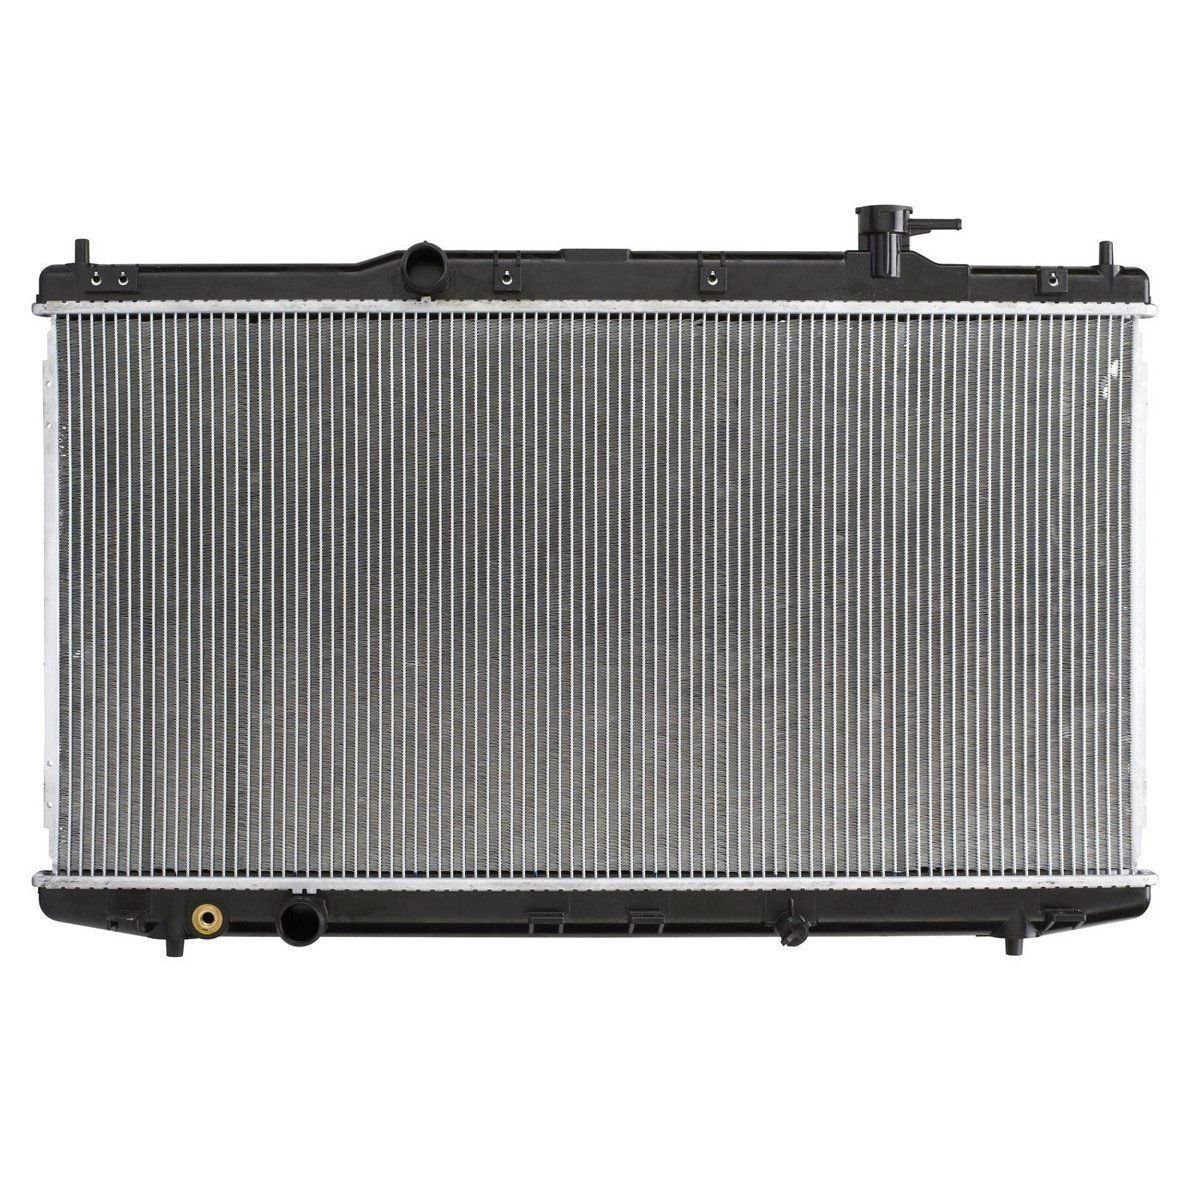 ECCPP Radiator 13363 for 2013-2015 Honda Accord EX/EX-L/LX/LX-S/Sport/Touring Coupe/Sedan 2/4-Door 2.4L by ECCPP